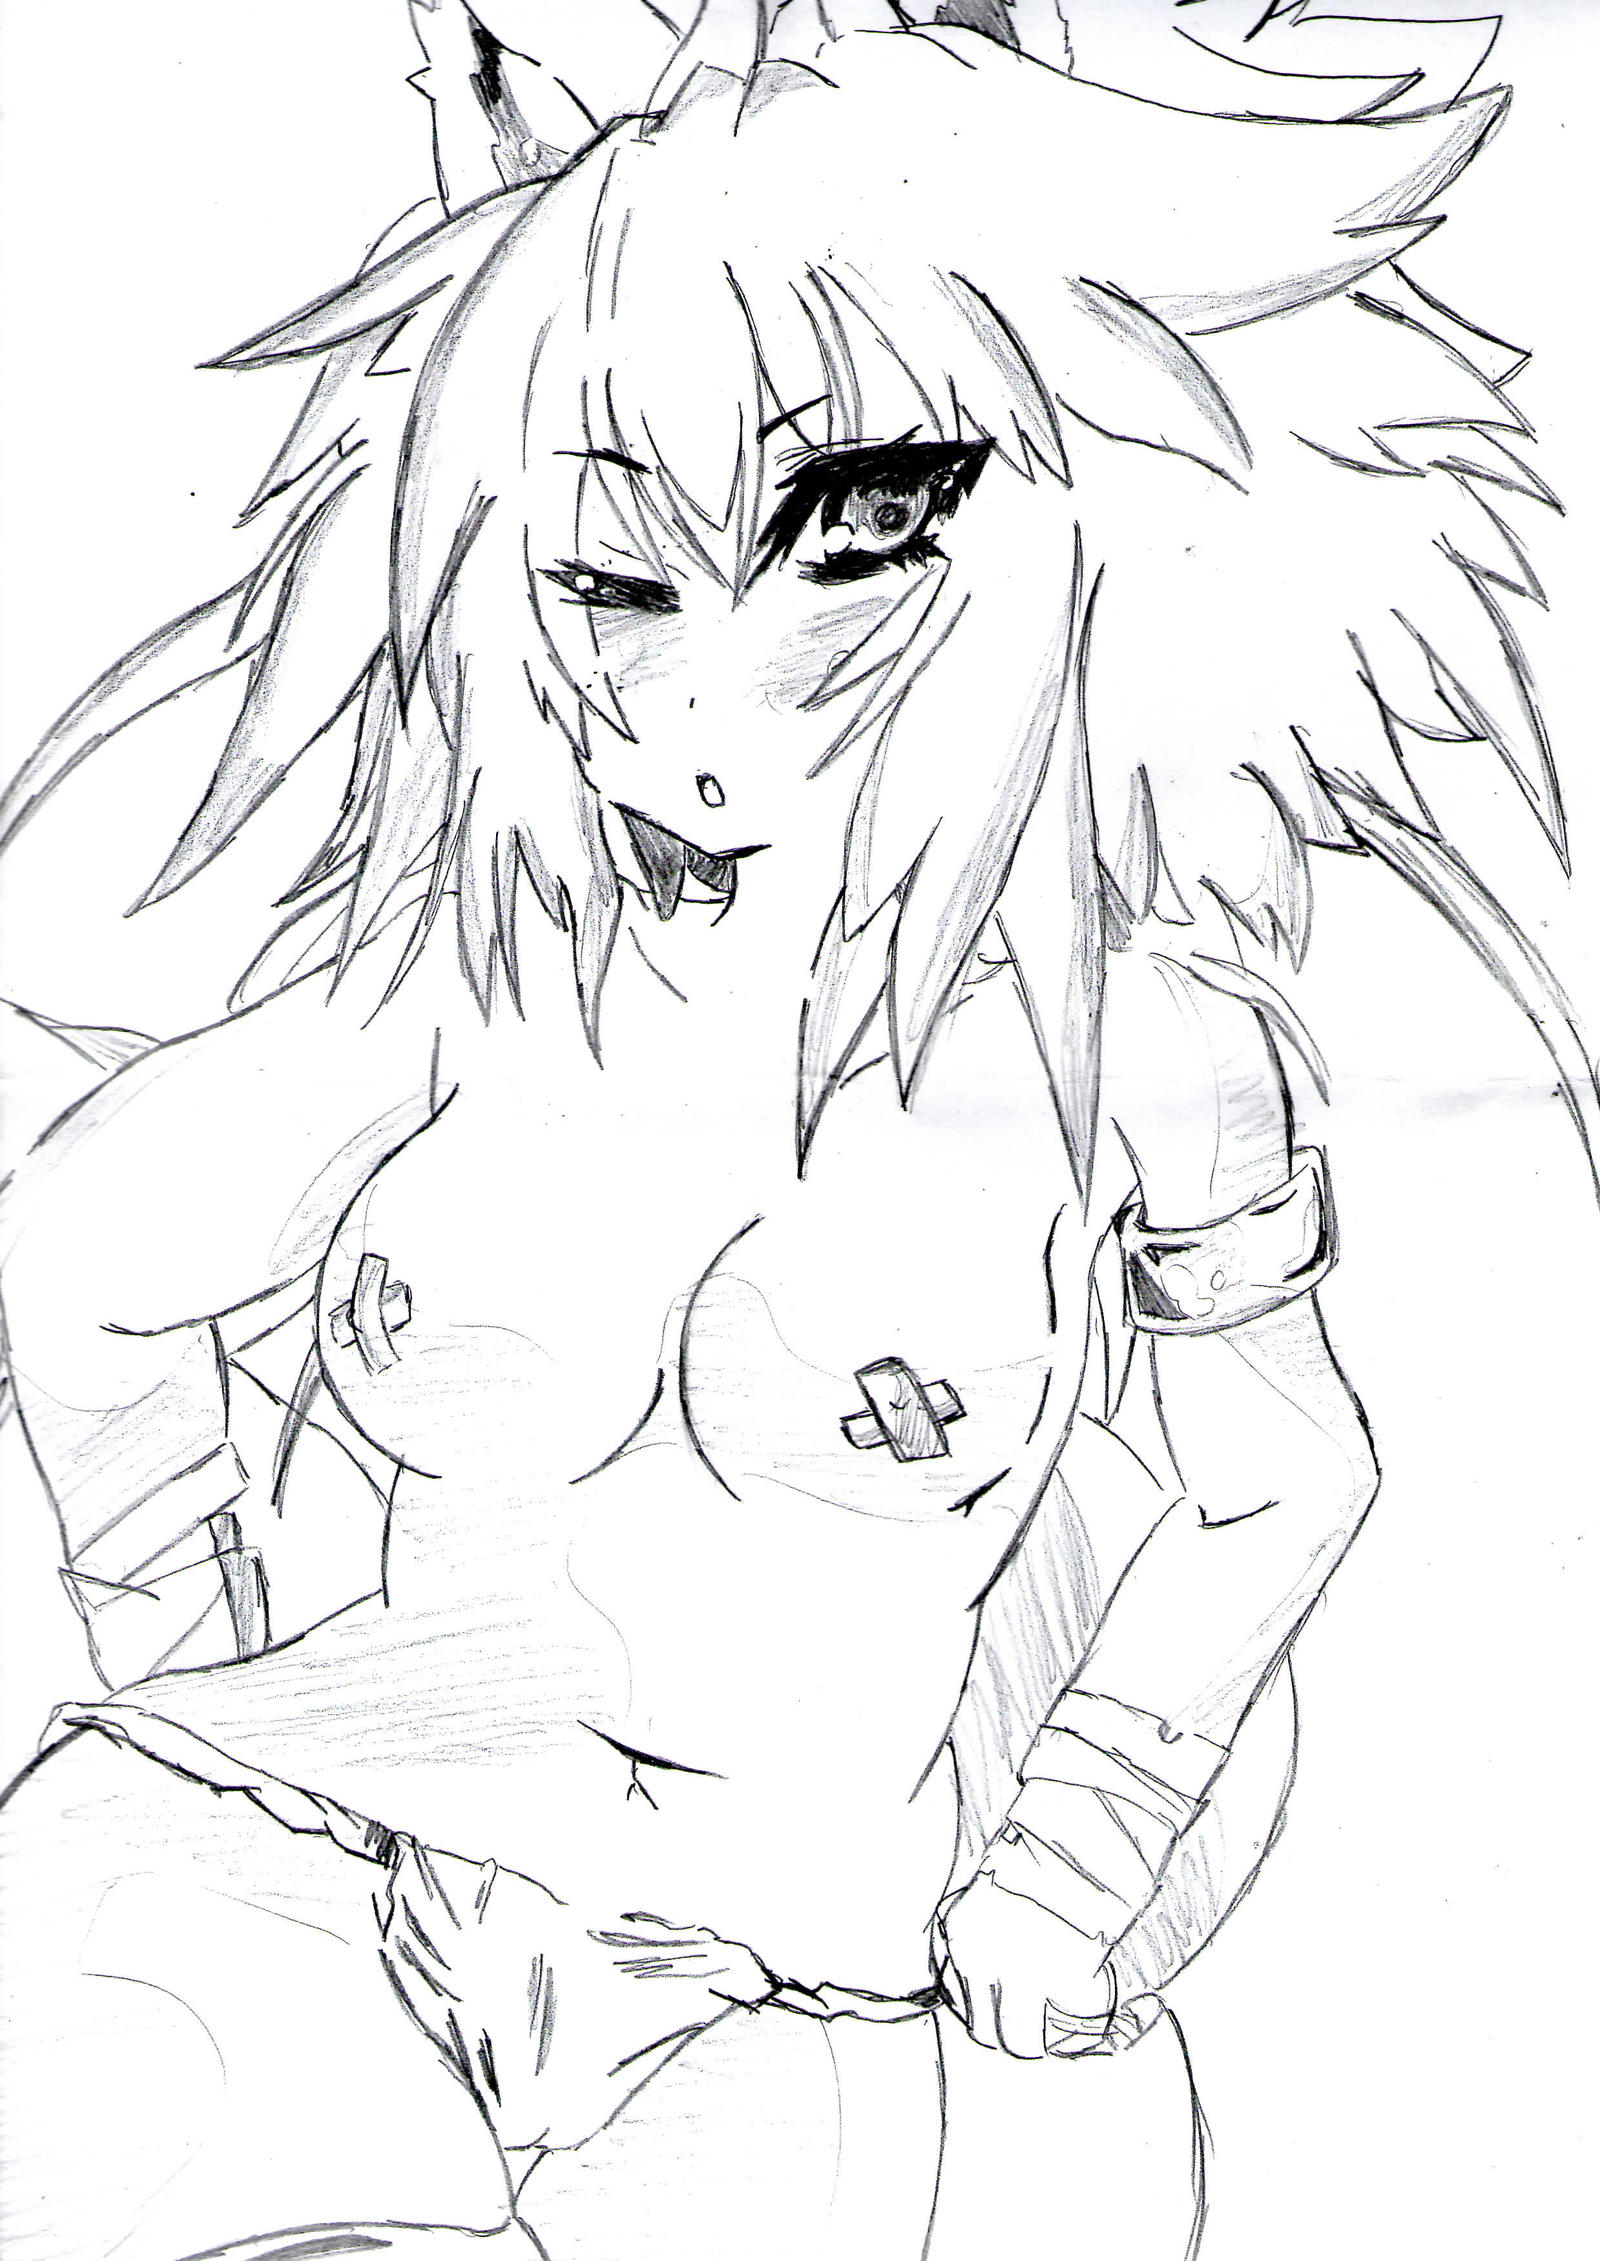 Cool drawing ecchi by sonicfreack on deviantart for Awesome easy to draw drawings